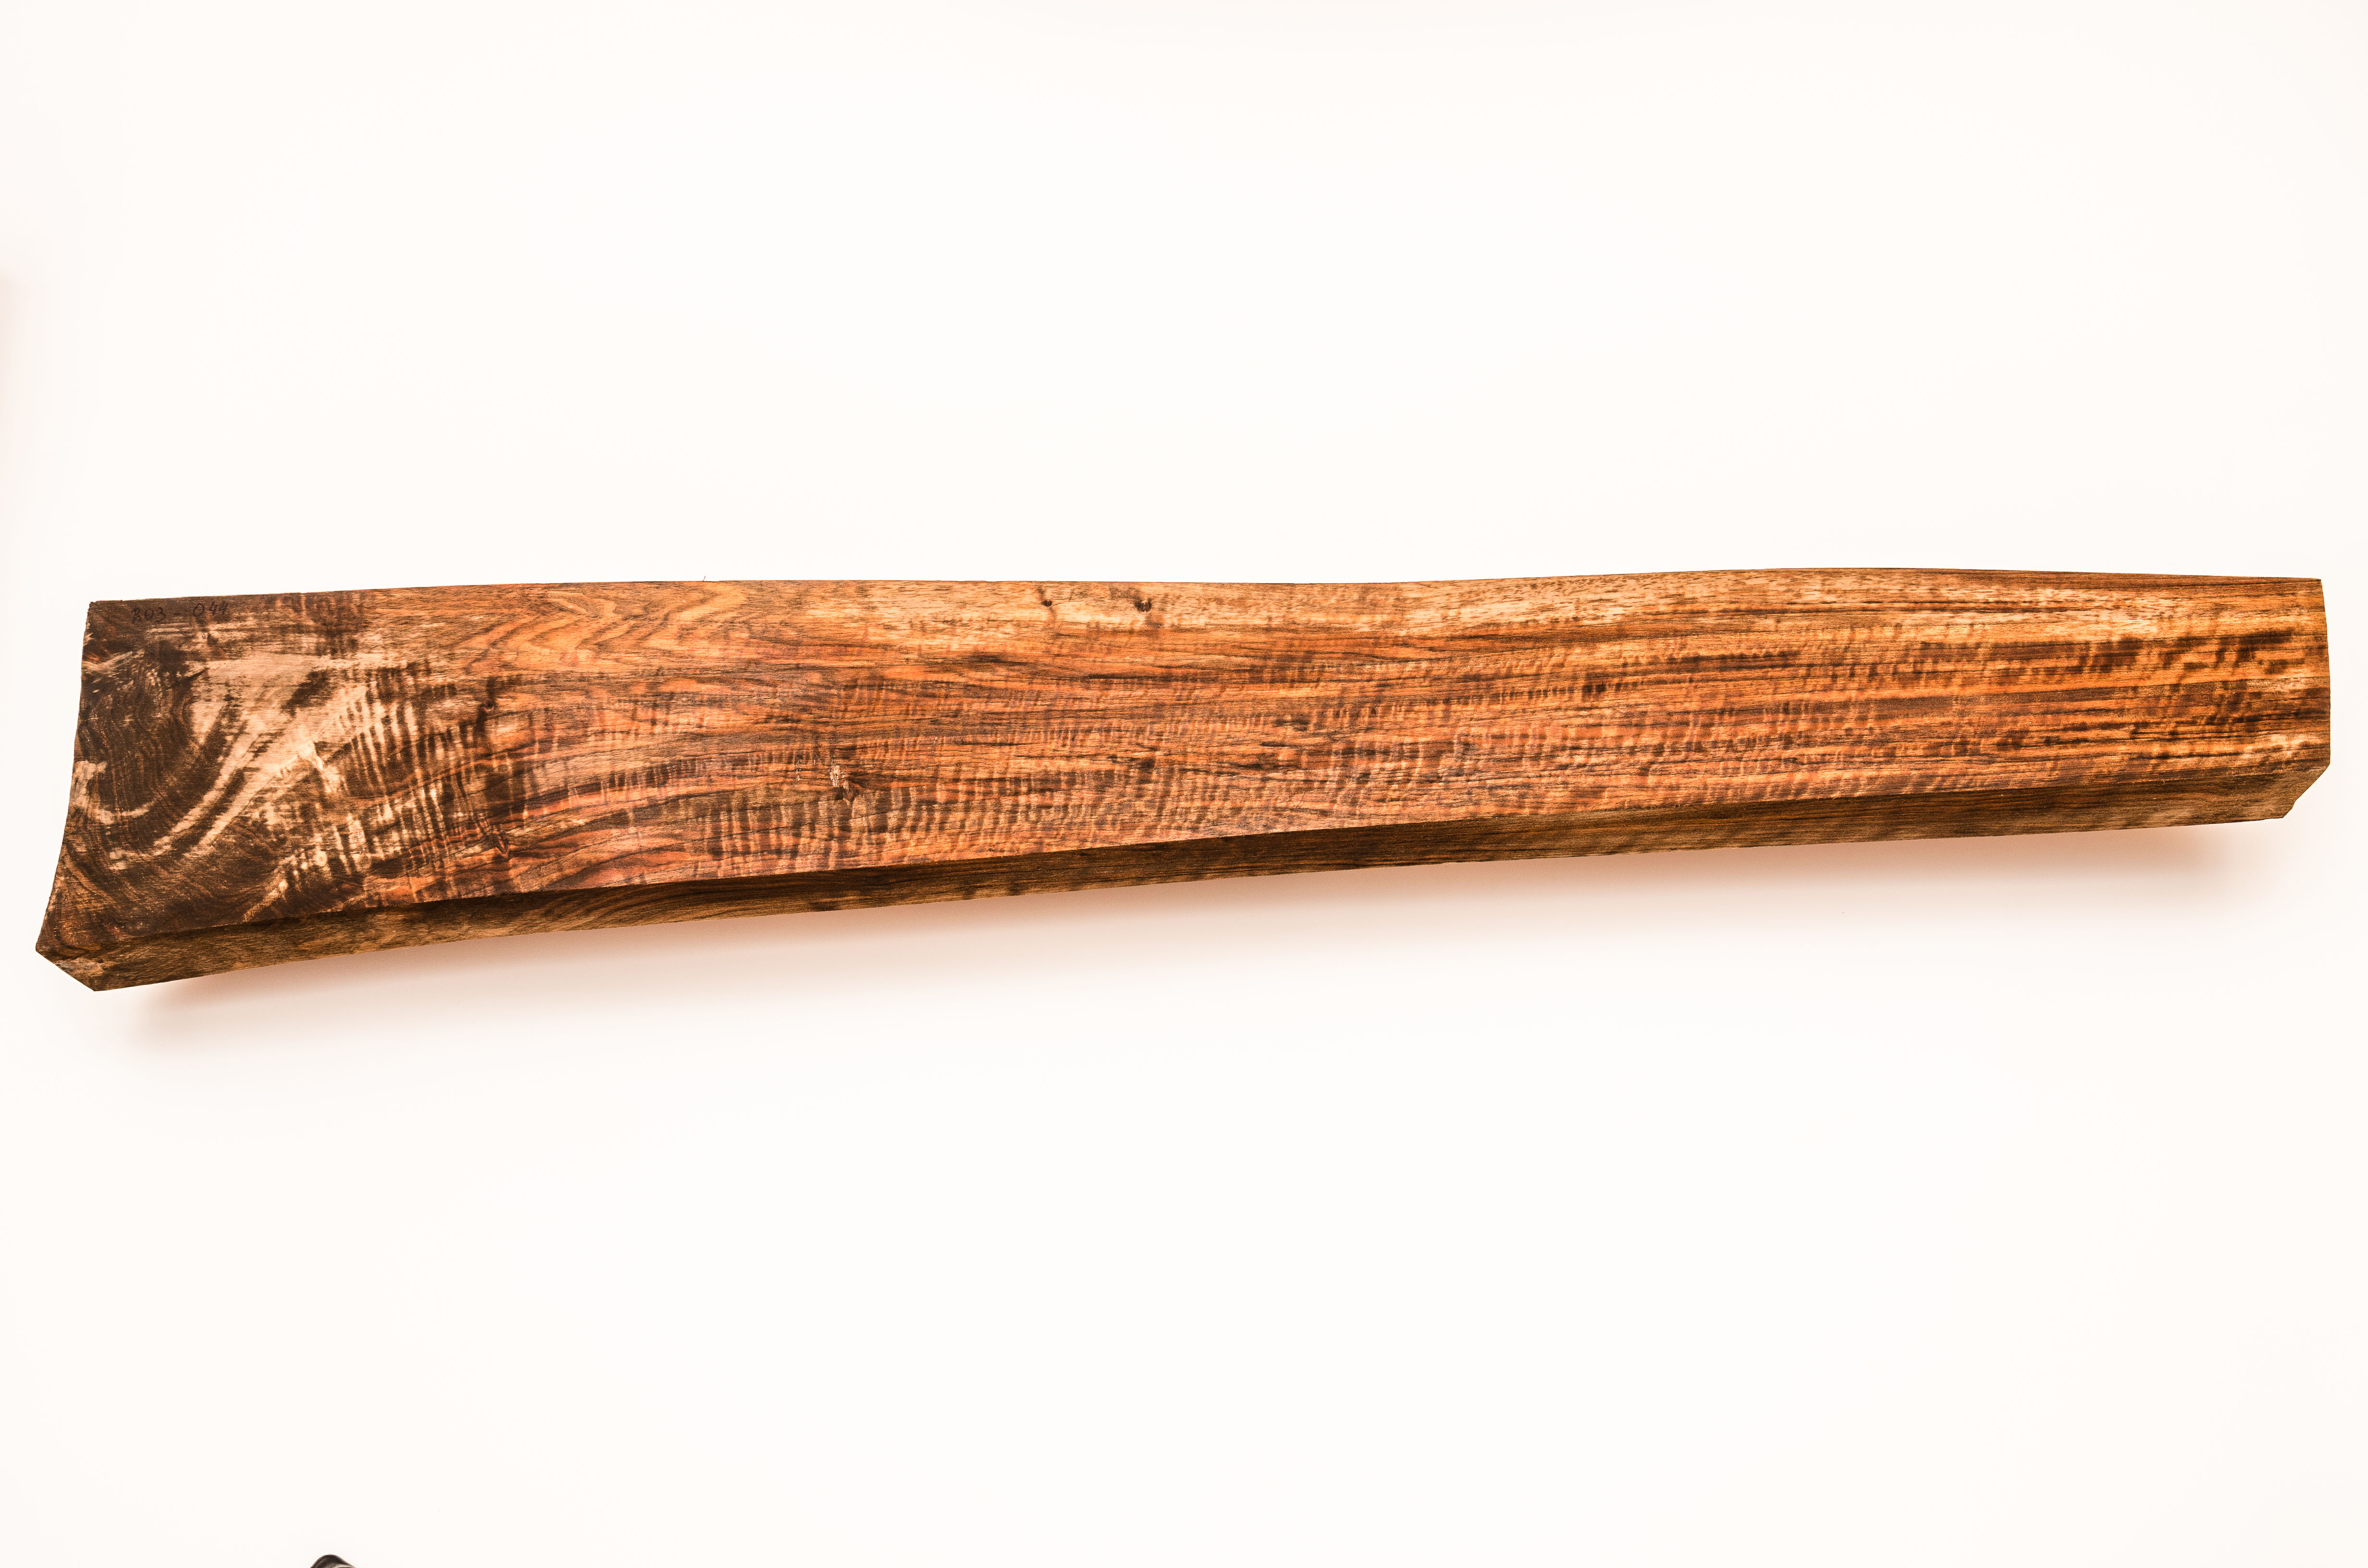 walnut_stock_blanks_for_guns_and_rifles-1291